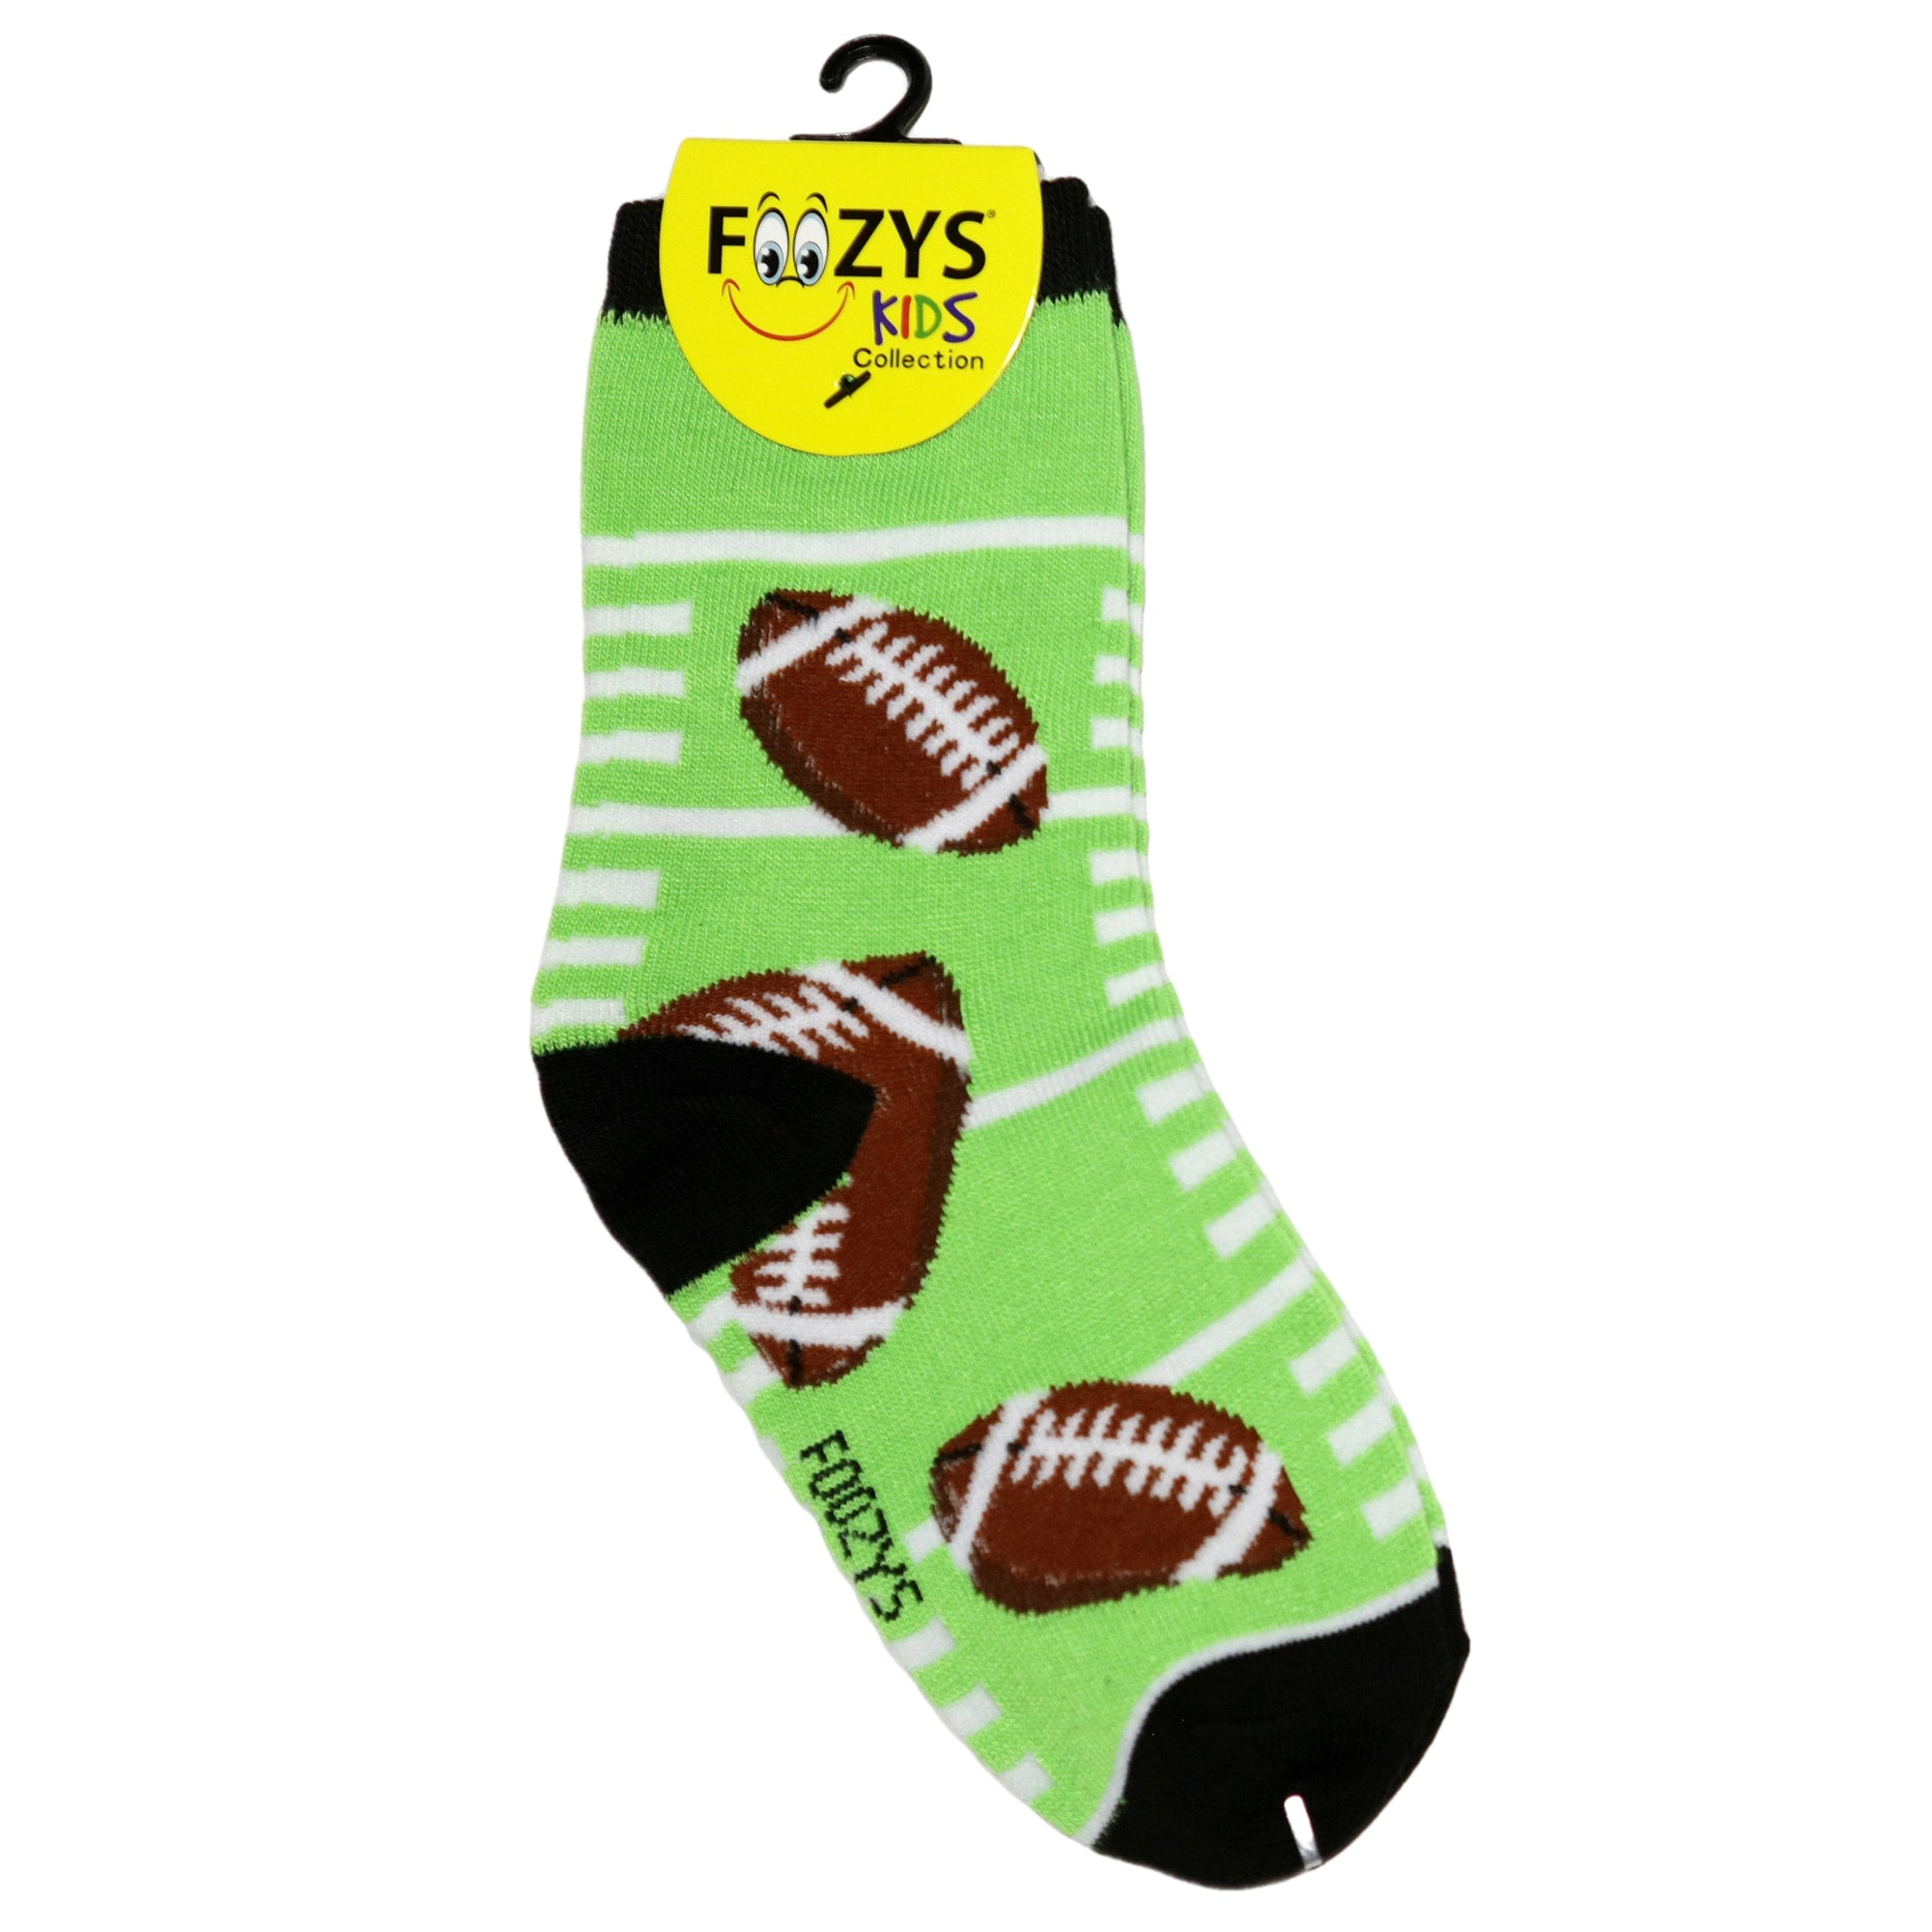 Foozys - FB-08: Football